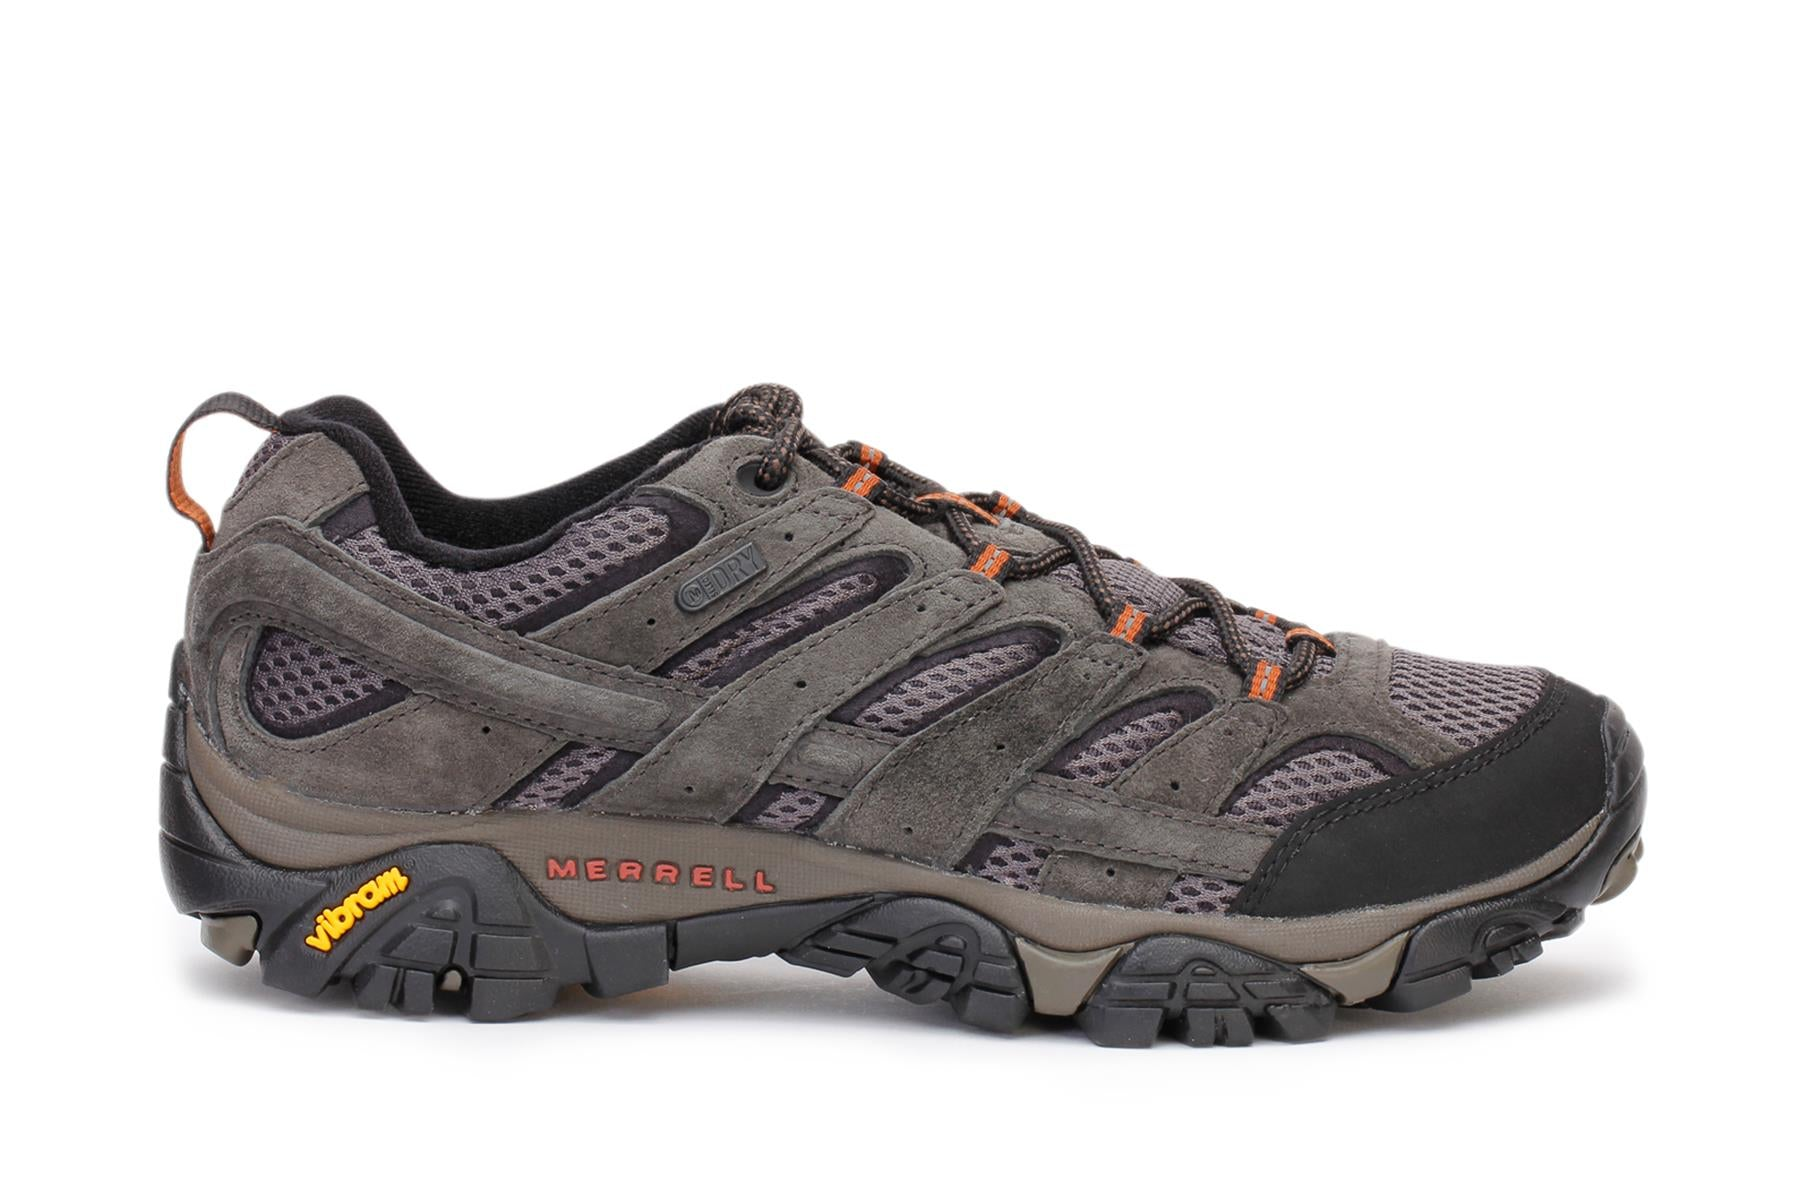 Merrell Mens Shoes Moab 2 Waterproof Beluga J06029